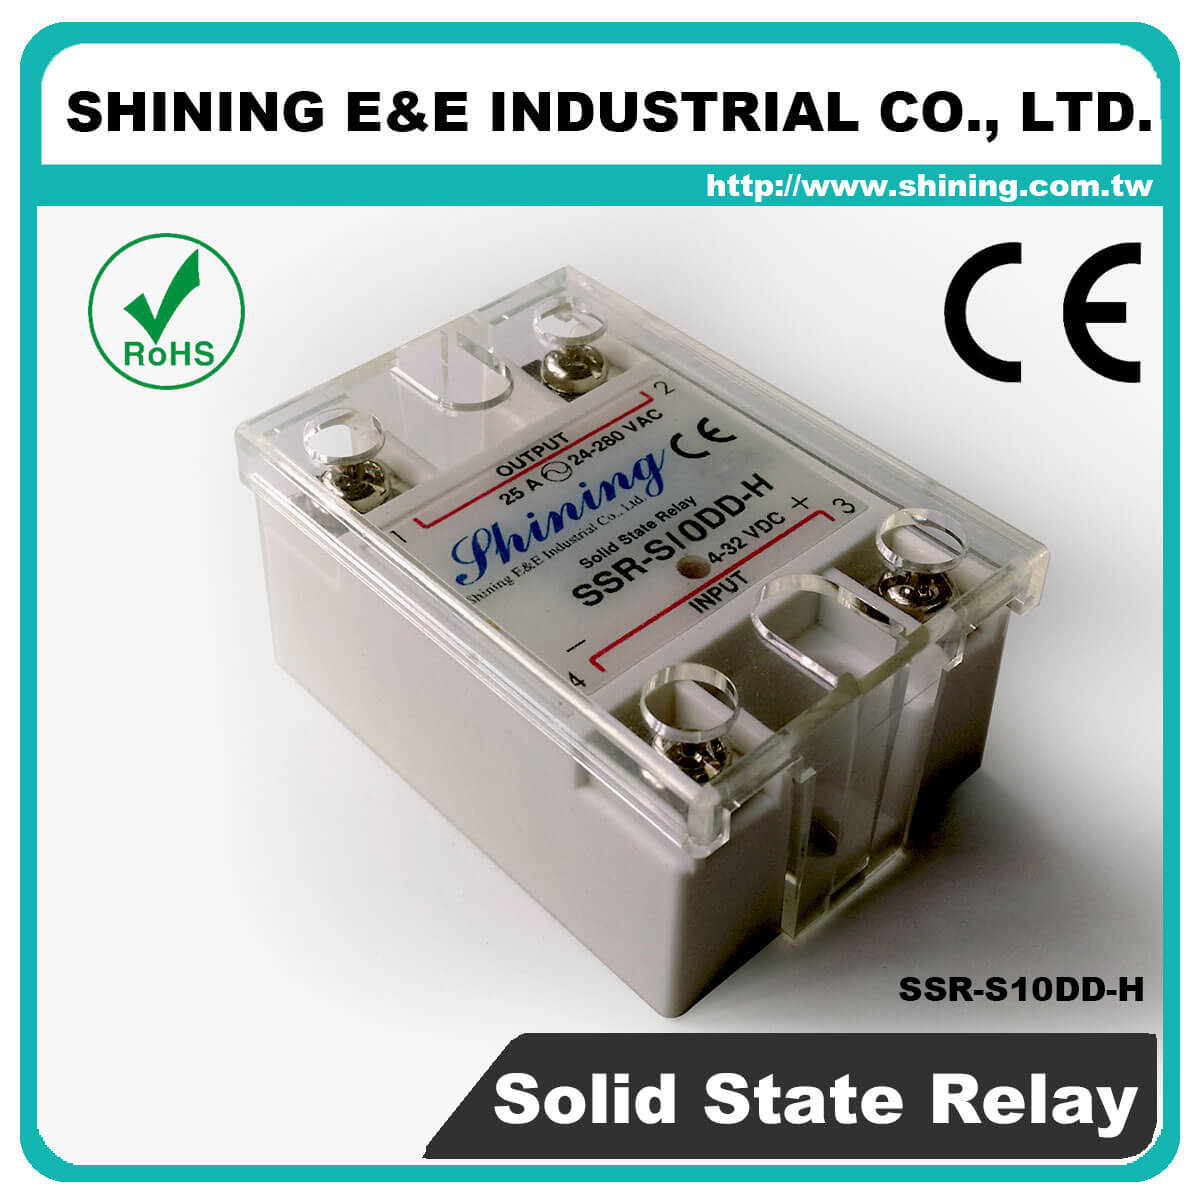 Ssr Sxxdd H Series Vrtoac Single Phase Solid State Relay Latch Up S10dd Dc To 10a 120vdc